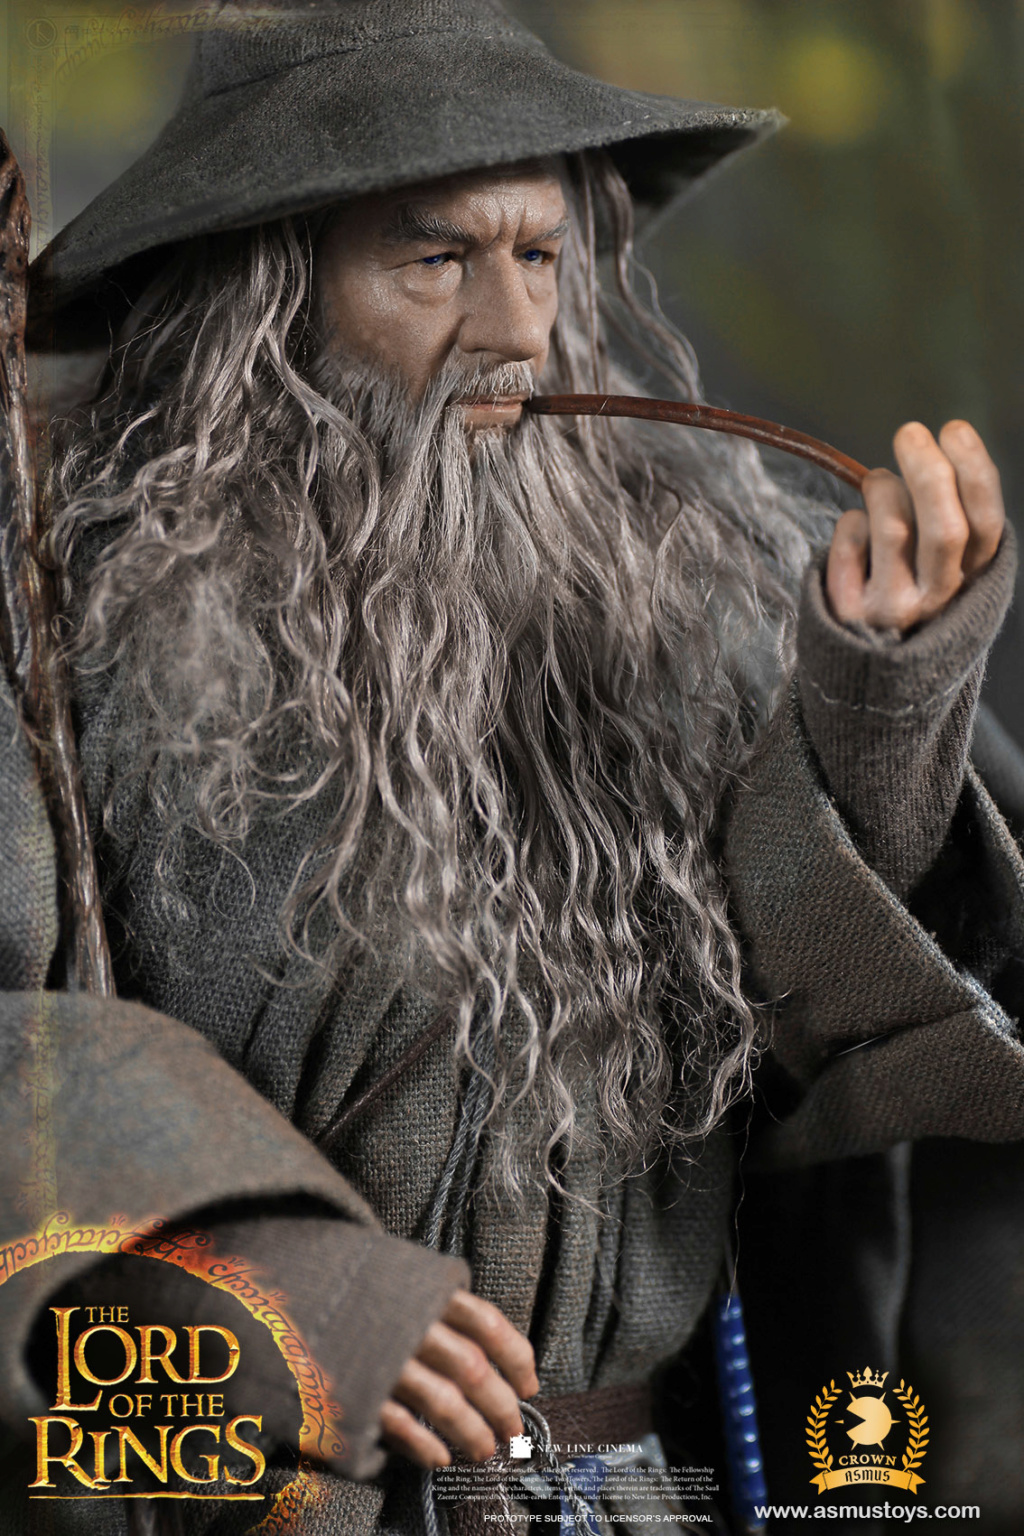 NEW PRODUCT: ASMUS TOYS THE CROWN SERIES : GANDALF THE GREY 1/6 figure 7212